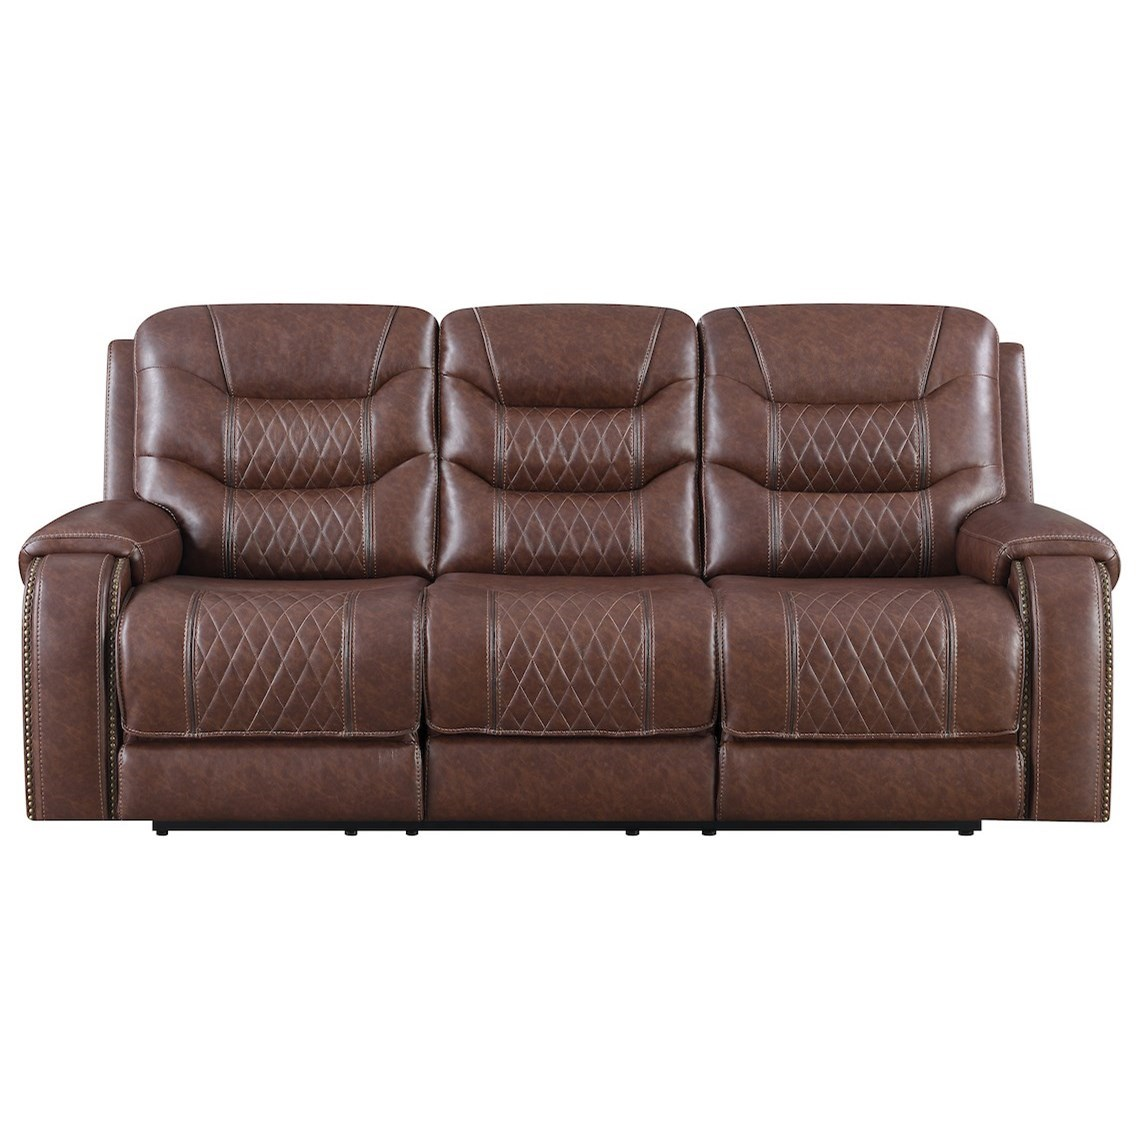 Hubble Power Reclining Sofa w/ Pwr Headrests by Klaussner International at Northeast Factory Direct